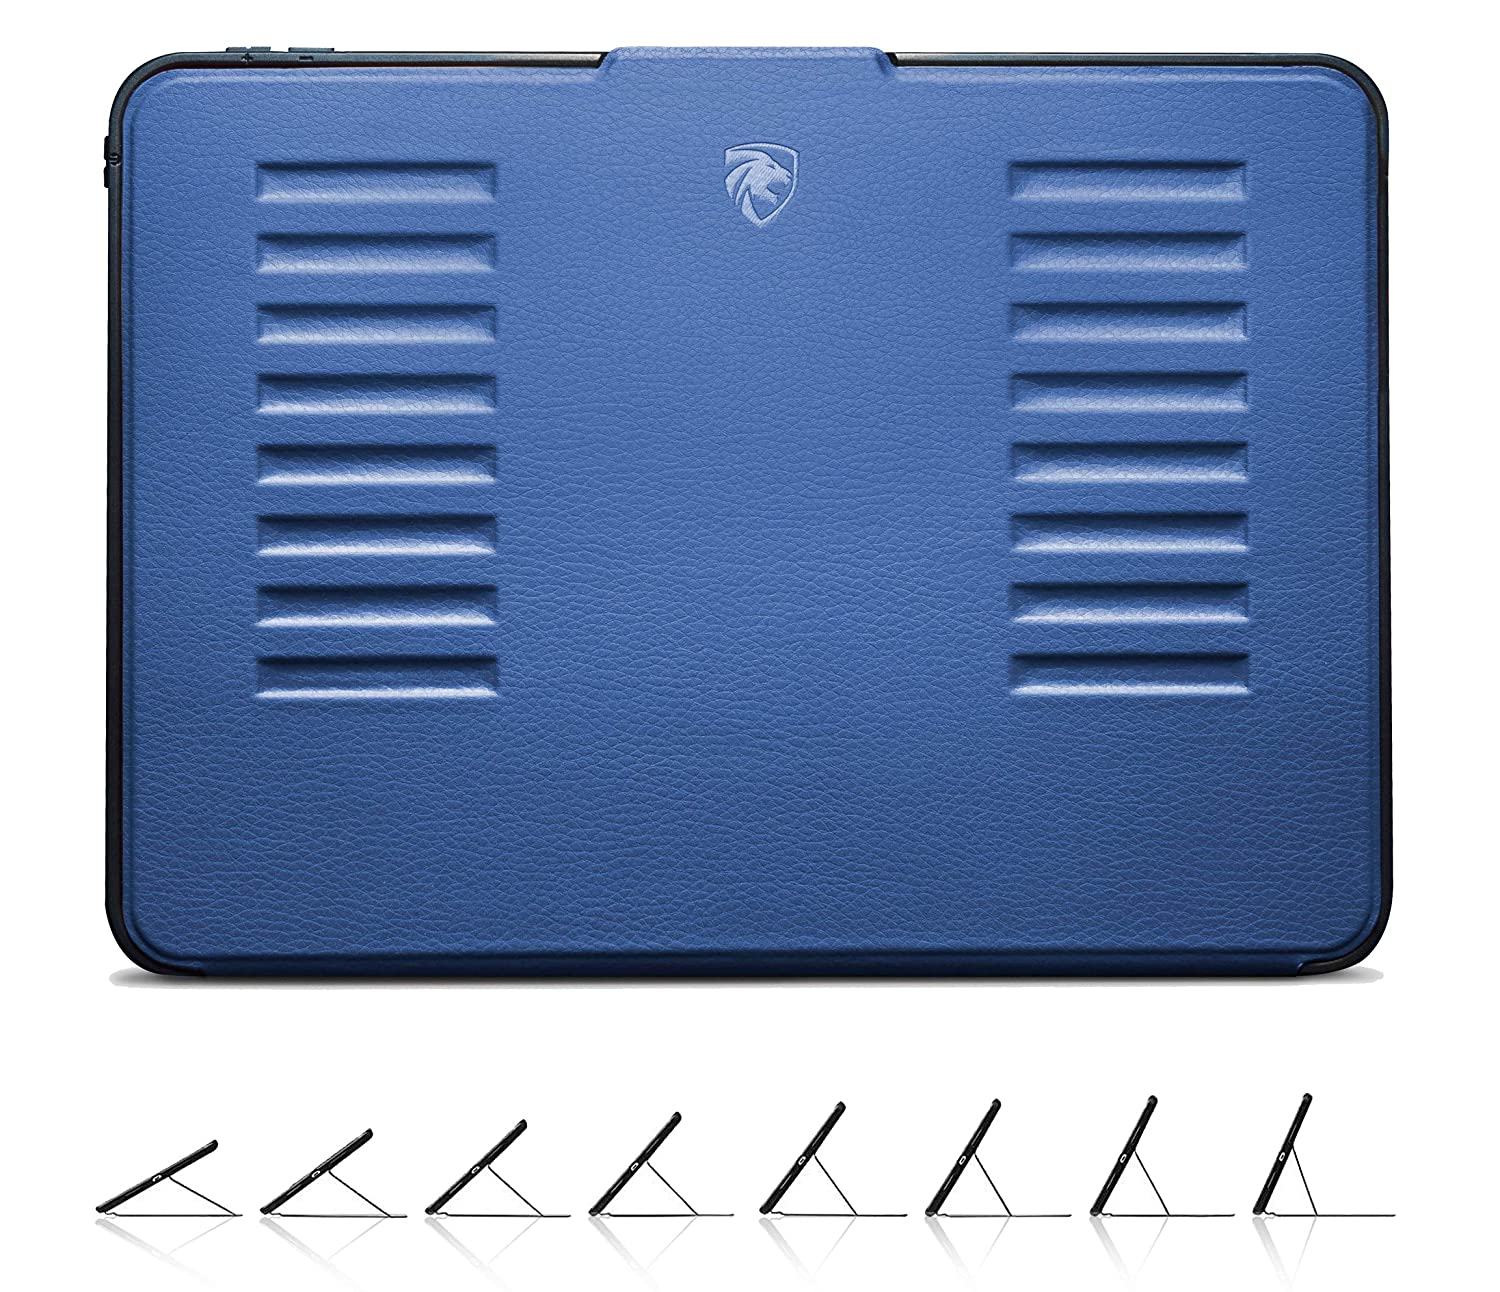 ZUGU CASE - iPad 10.2 Case - Very Protective But Thin + Convenient Magnetic Stand + Sleep/Wake Cover (Navy Blue)